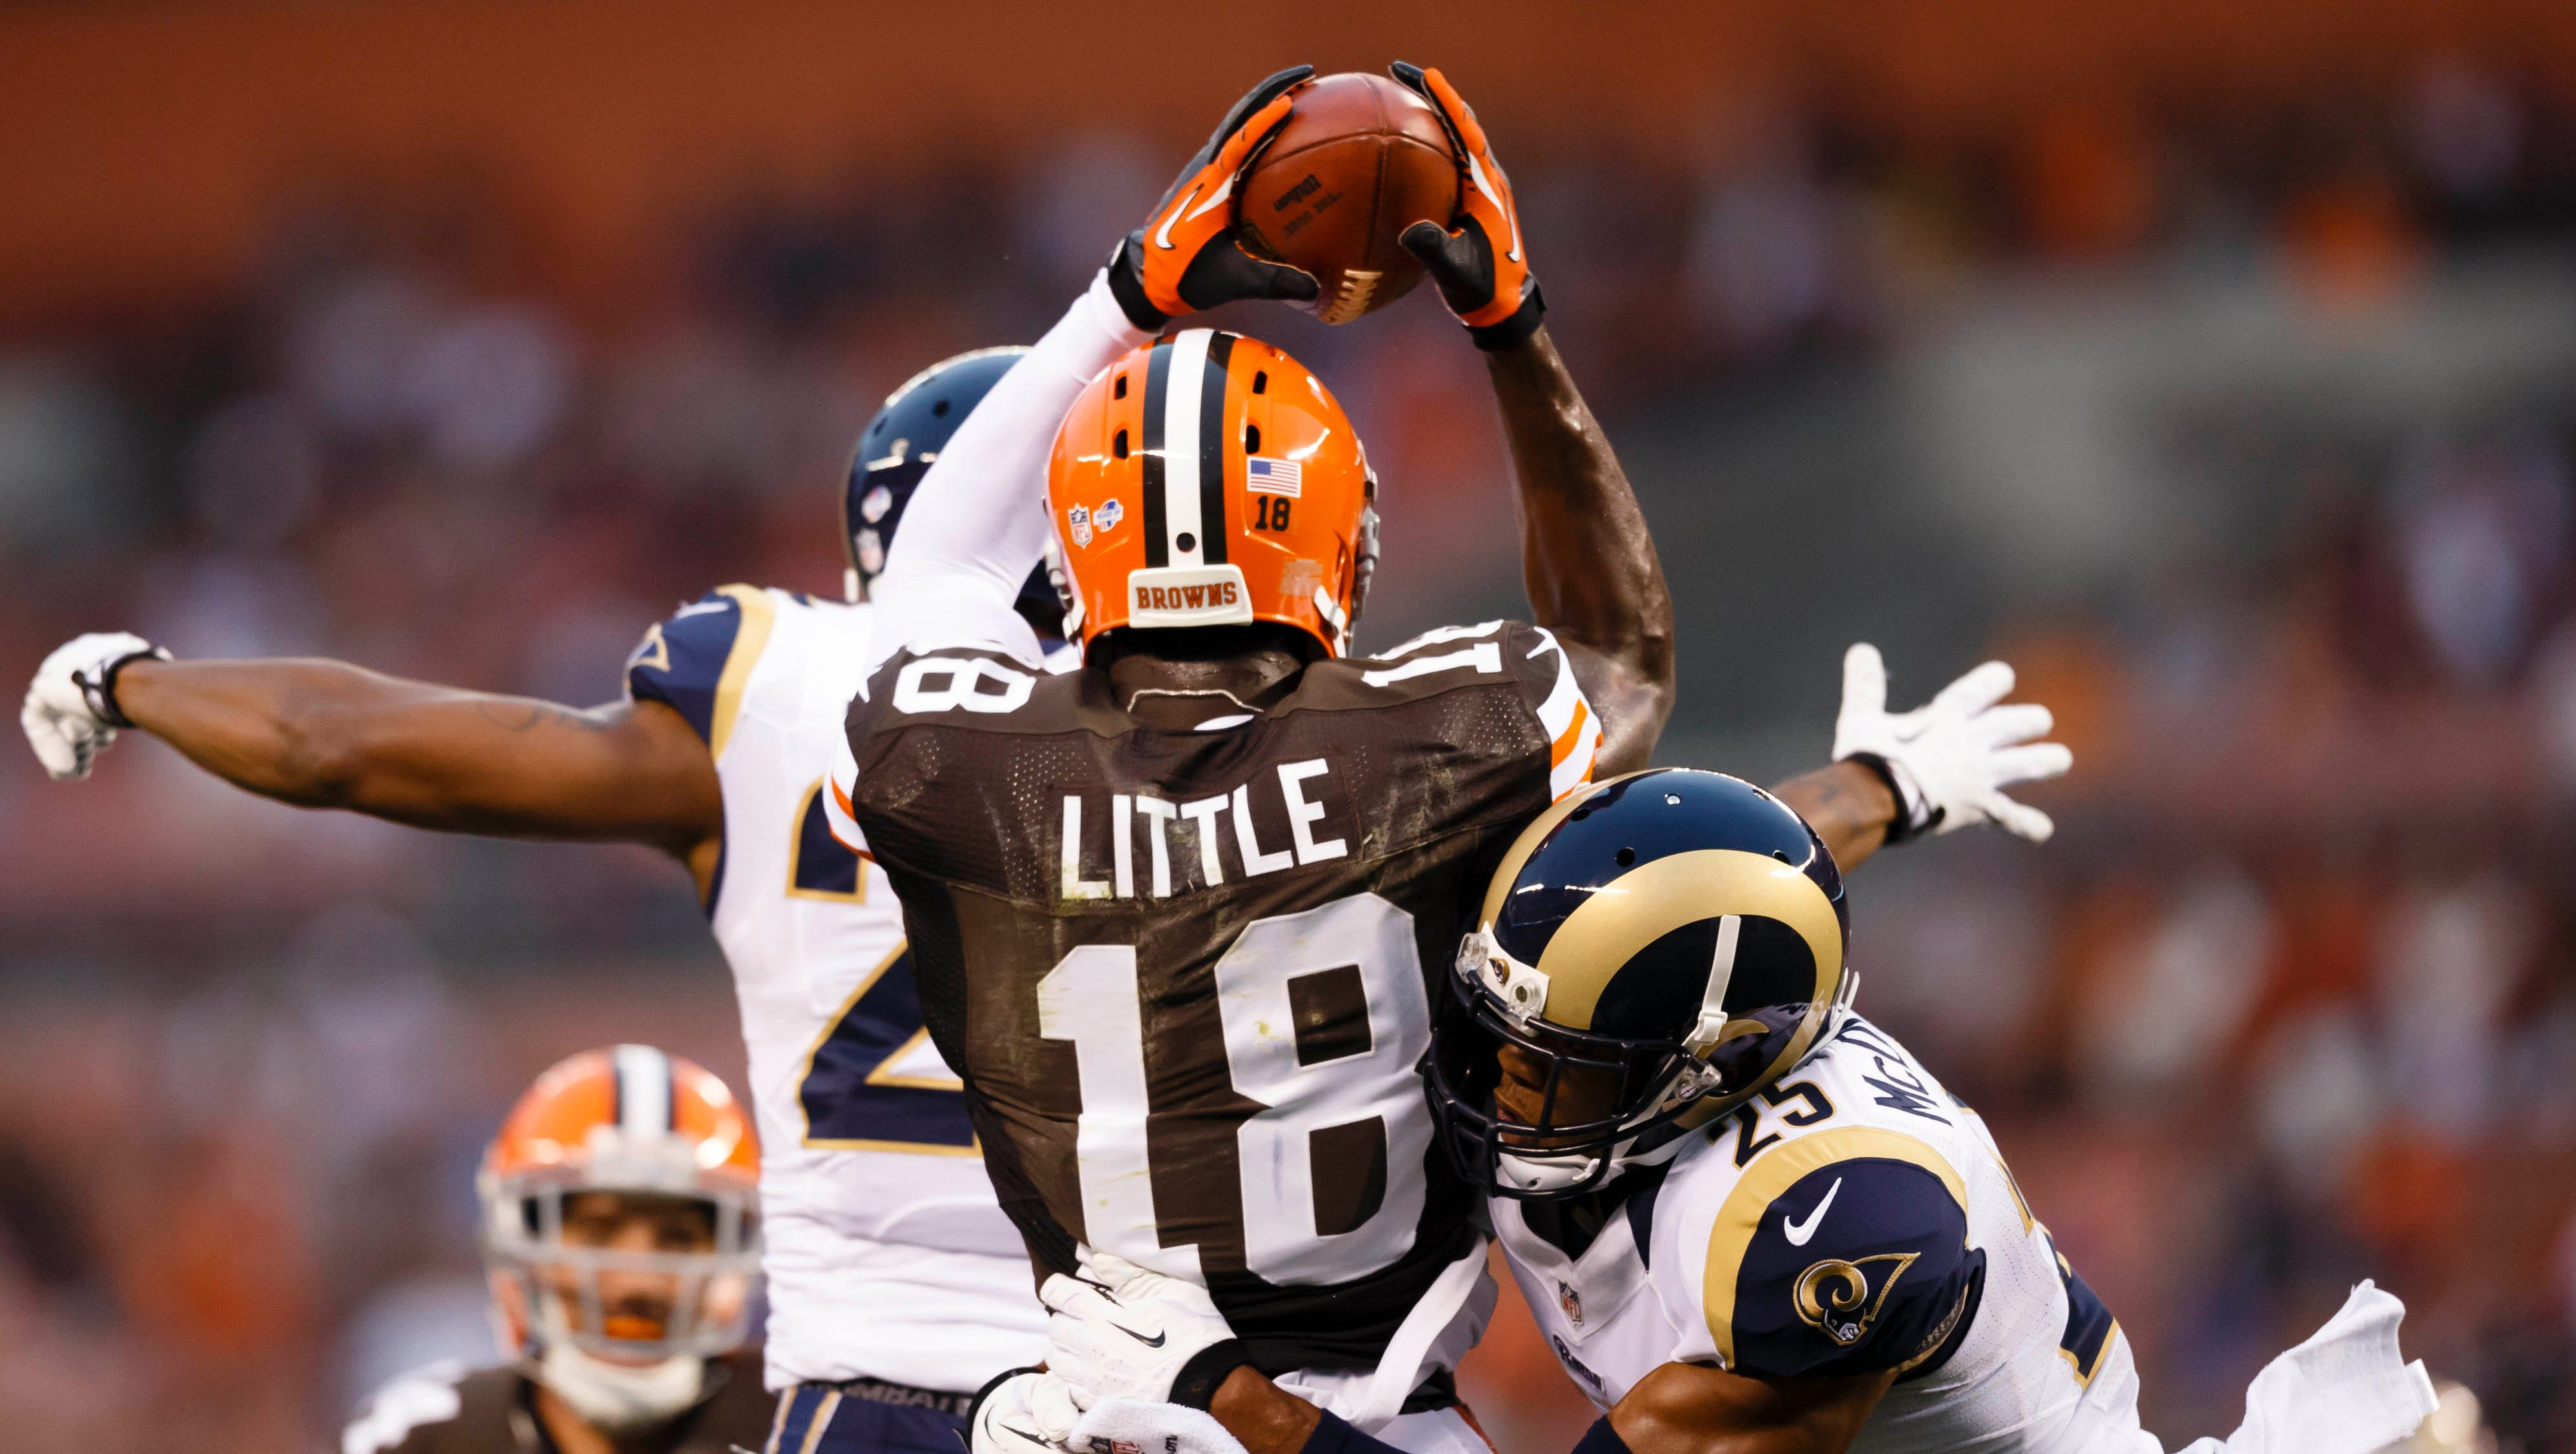 Cleveland Browns wide receiver Greg Little (18) makes a catch while St. Louis Rams free safety T.J. McDonald (25) goes in for the tackle in the first quarter at FirstEnergy Stadium.